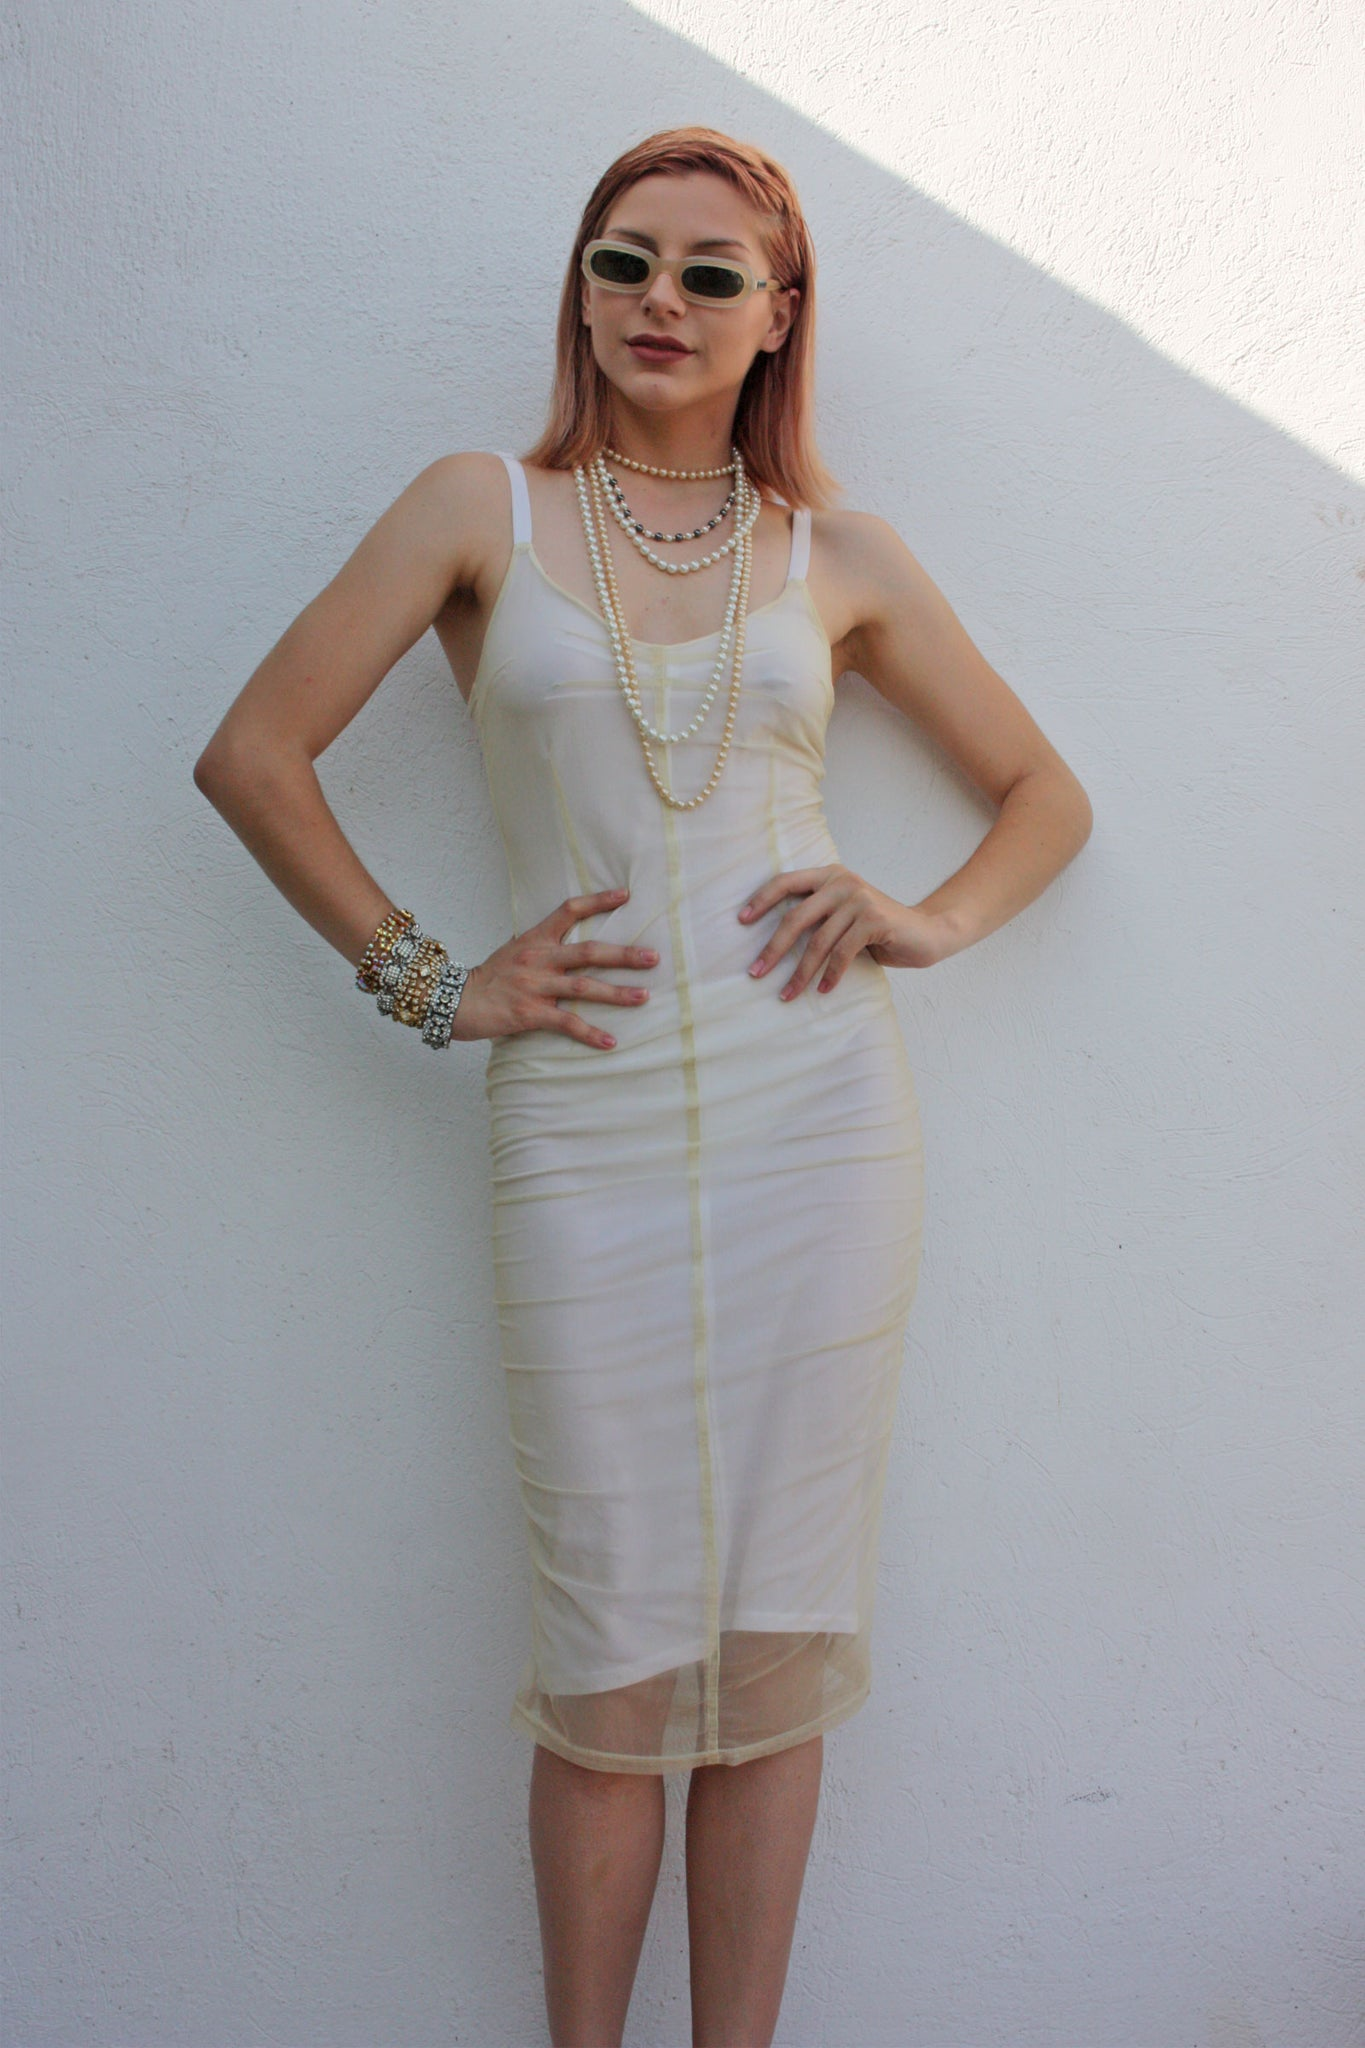 90s vintage white dress - Shop SoLovesVintage